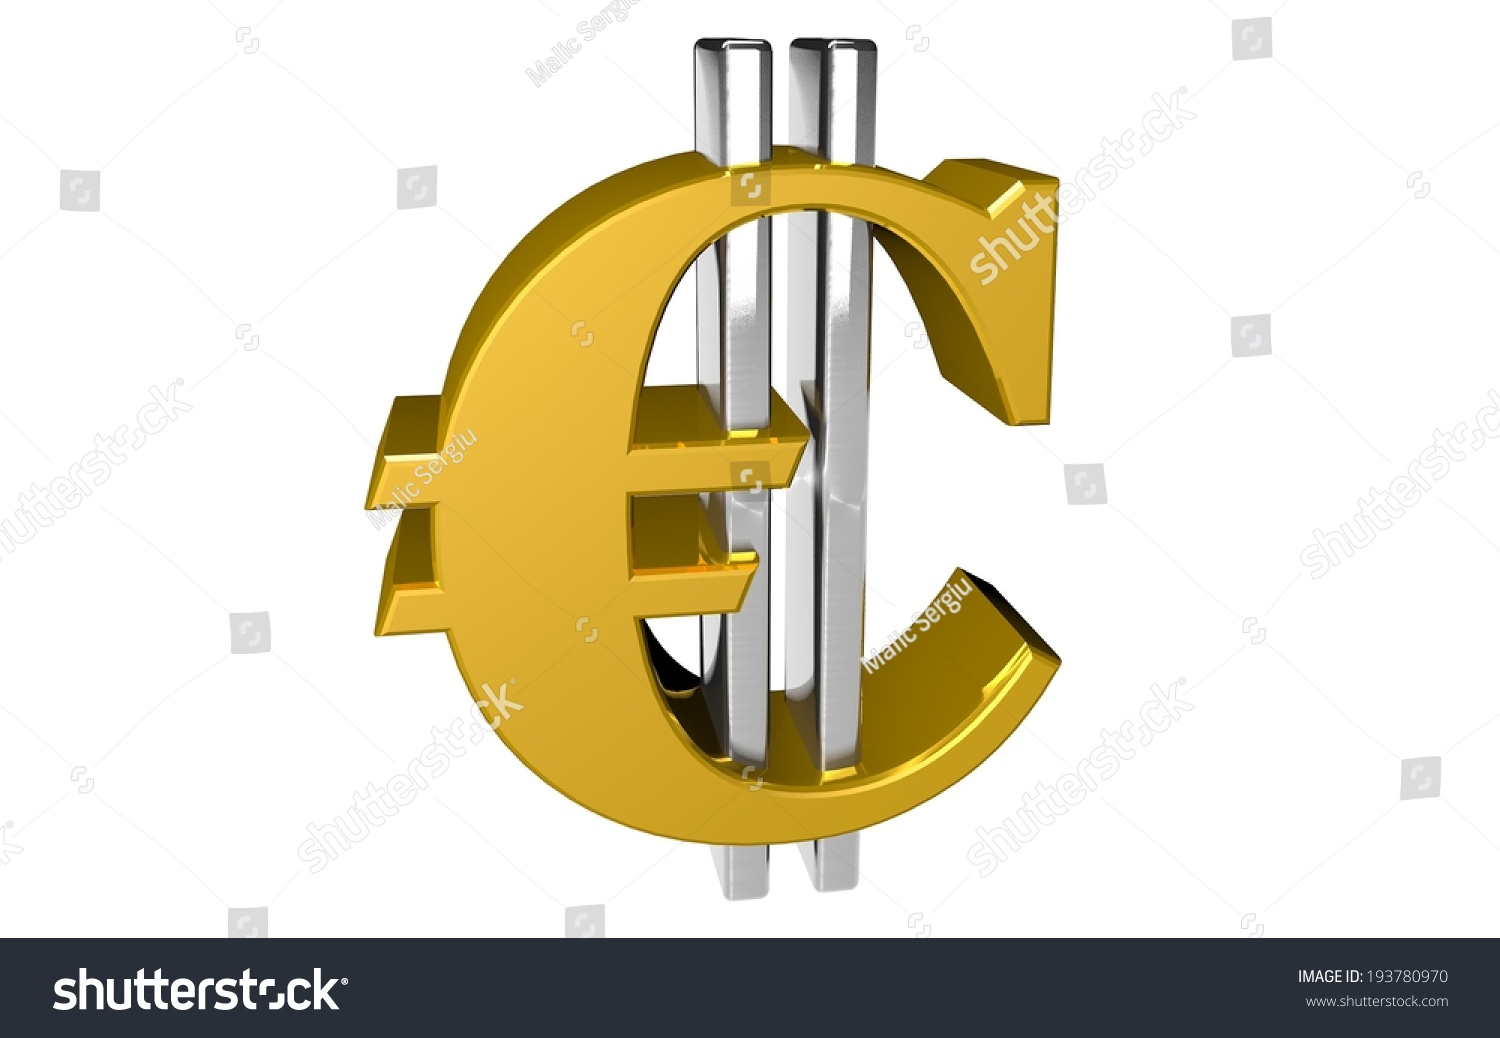 All the best symbol images symbol and sign ideas stock market symbol for gold image collections symbol and sign ideas stock market symbol for gold buycottarizona